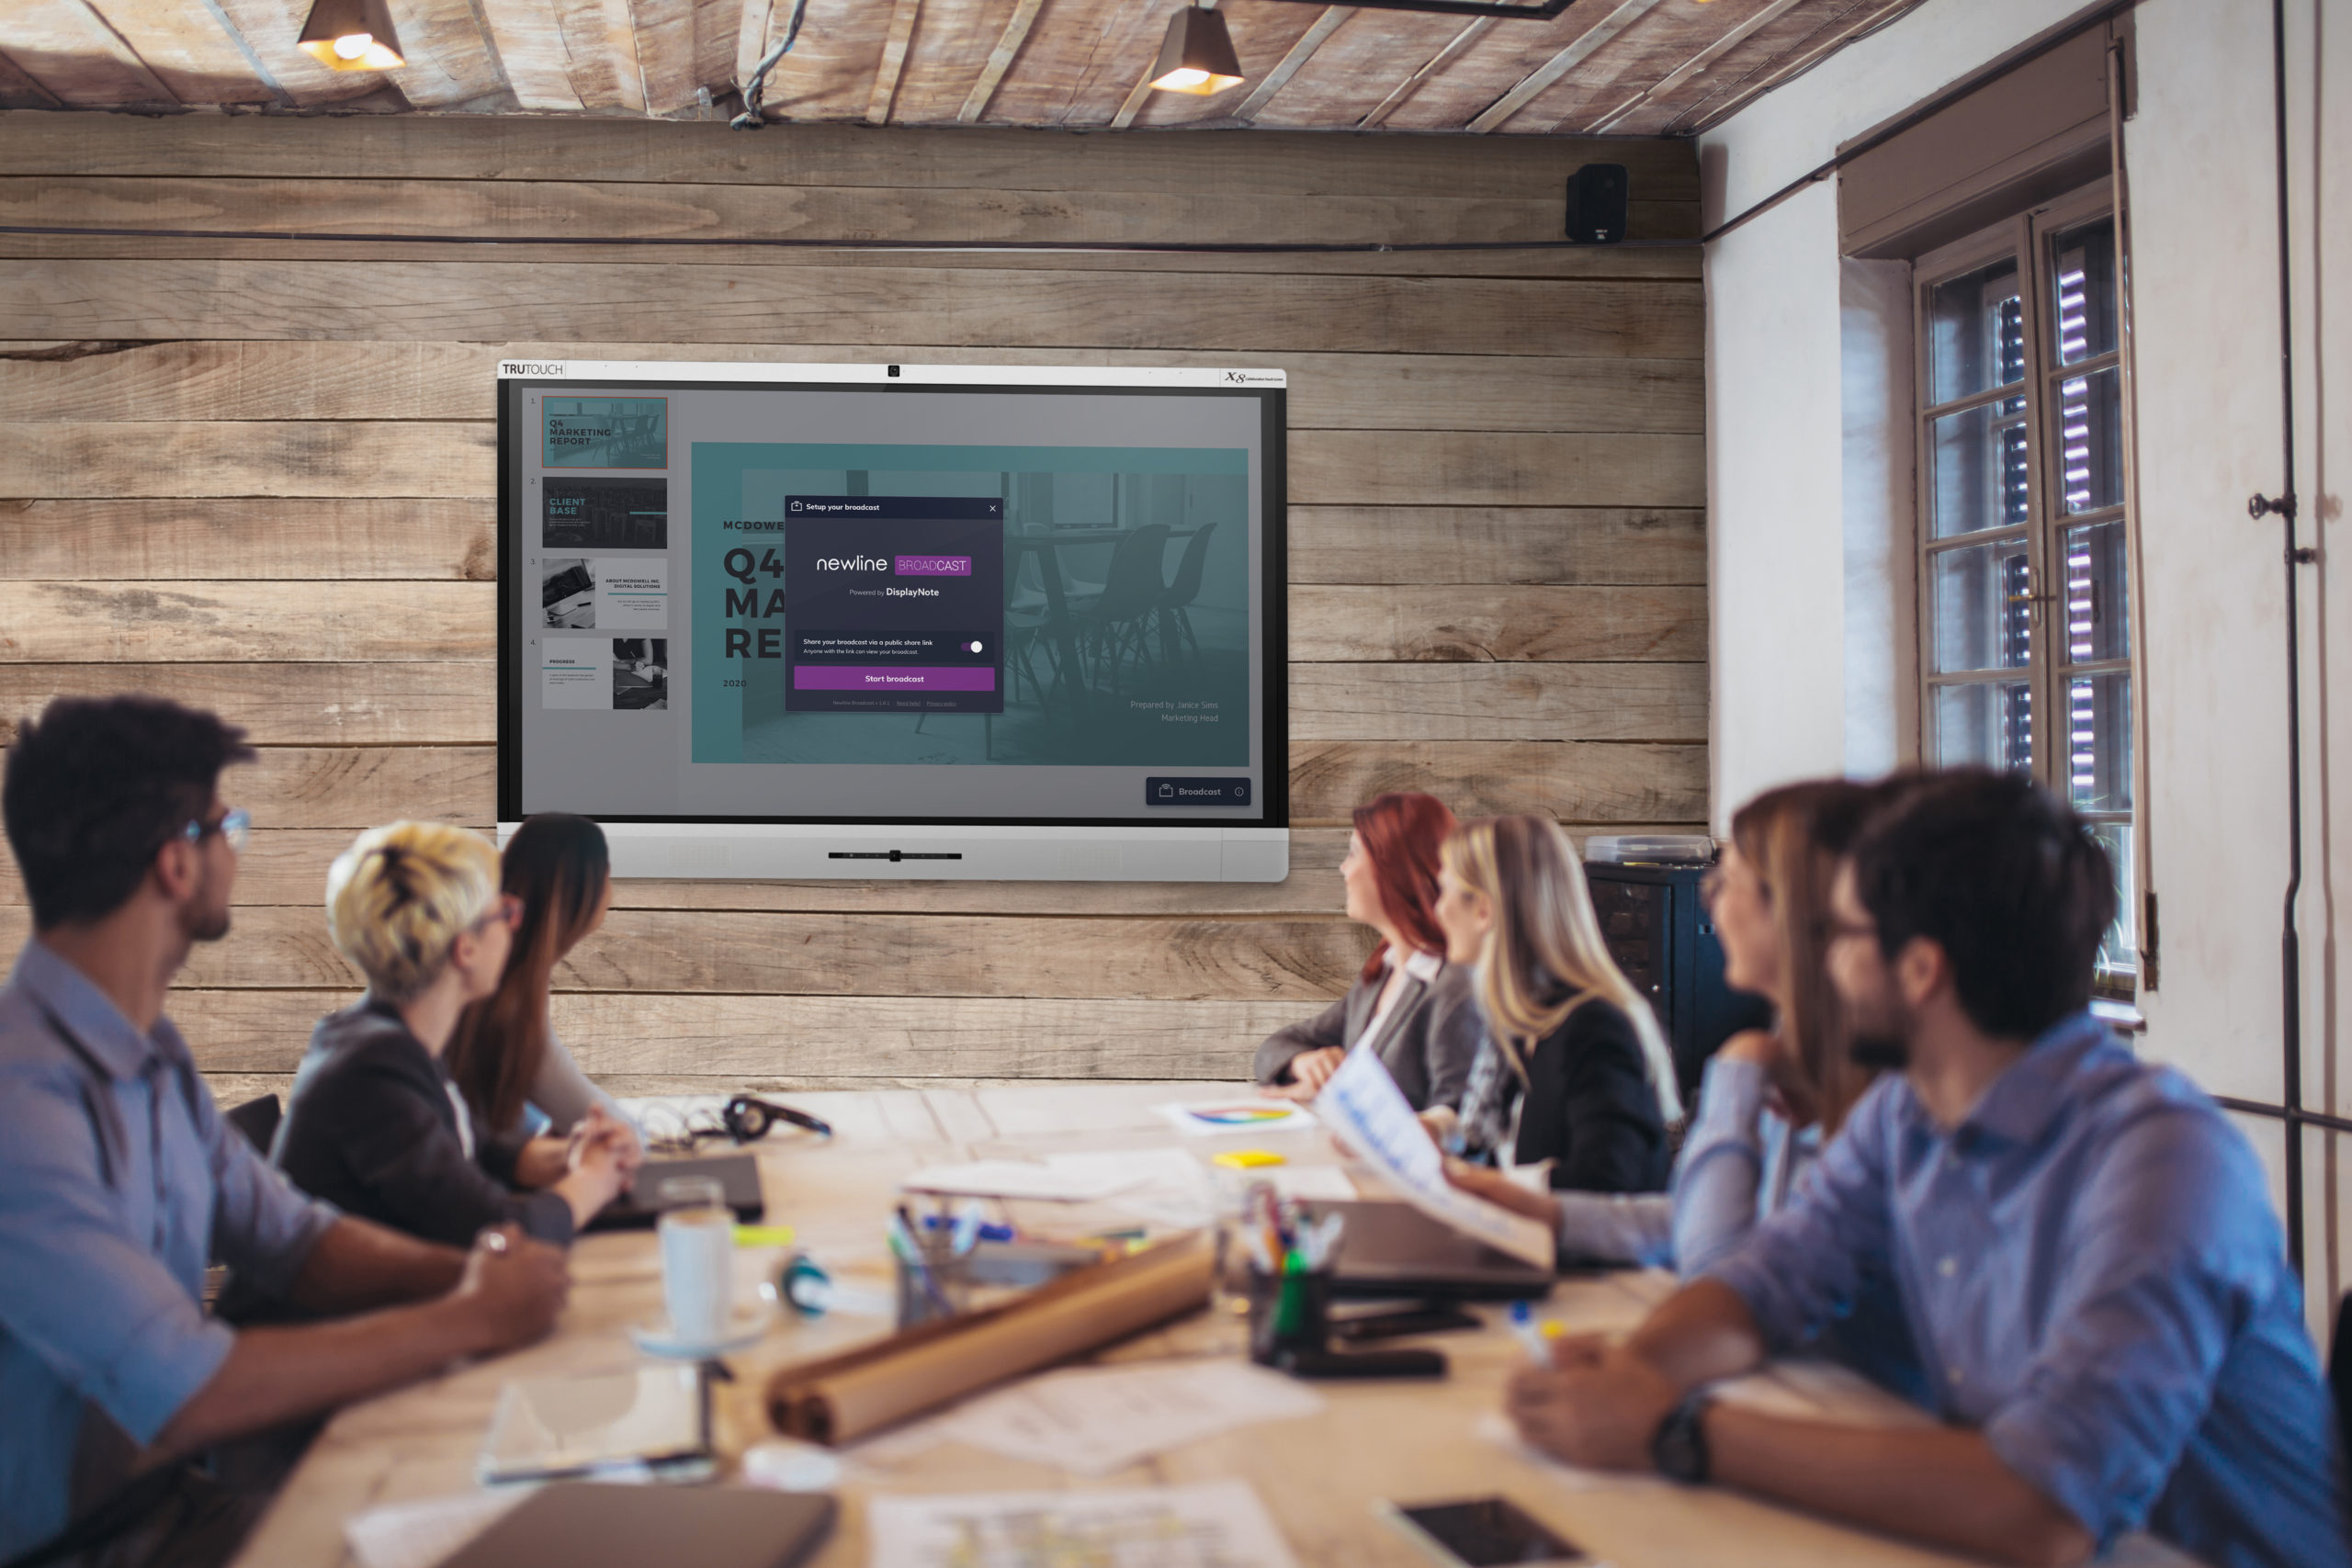 Business people looking at projector during video conference in